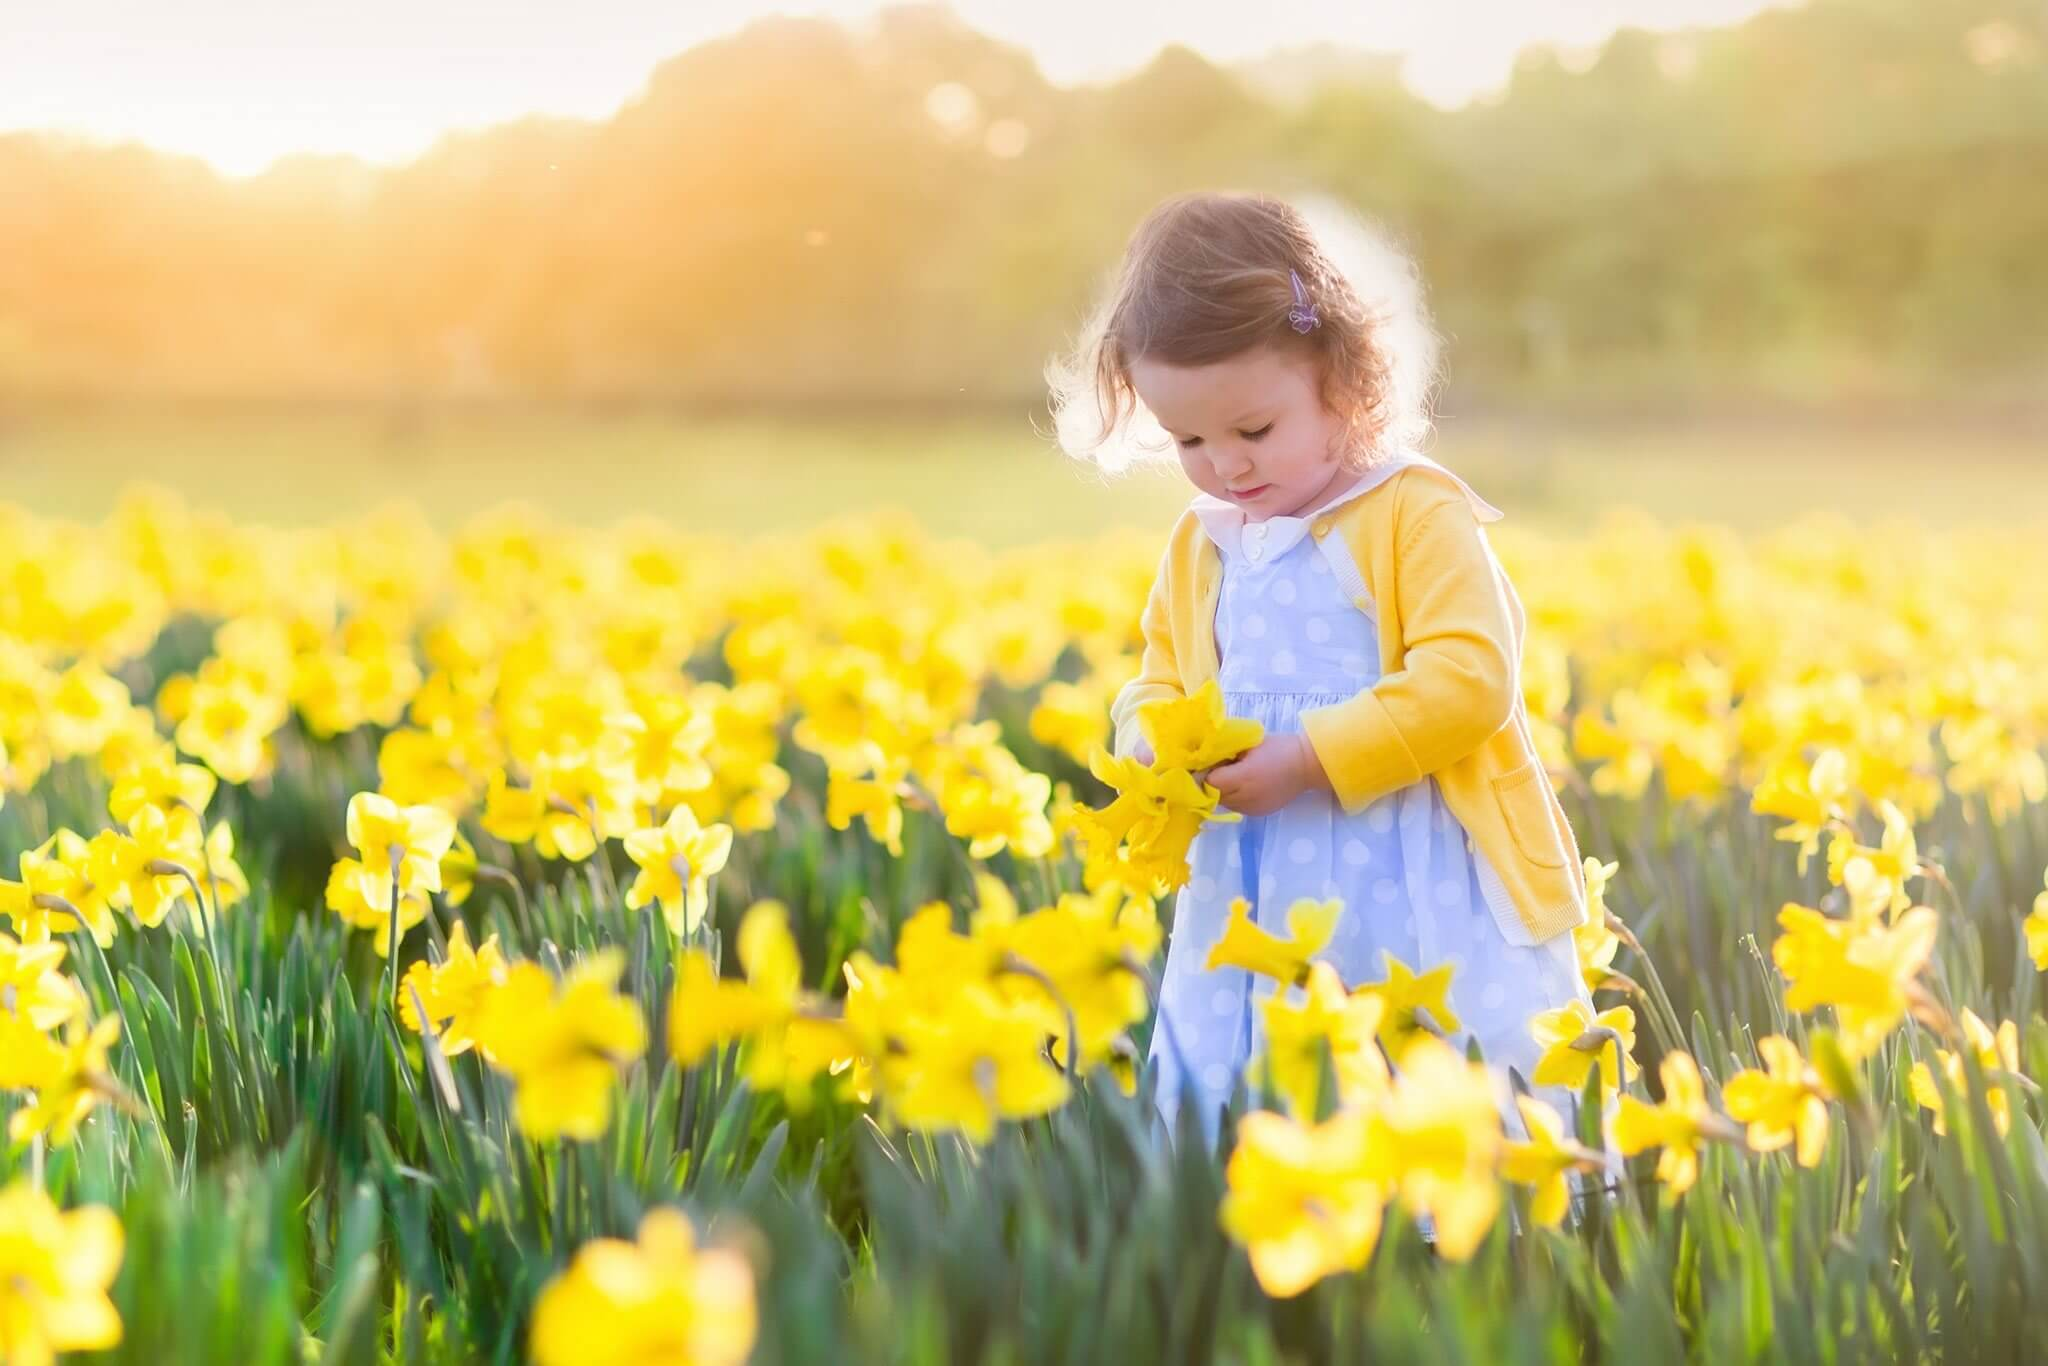 Girl holding yellow flower in field Banner image for Gwinnett Pediatrics and Adolescent Medicine, Gwinnett Pediatricians